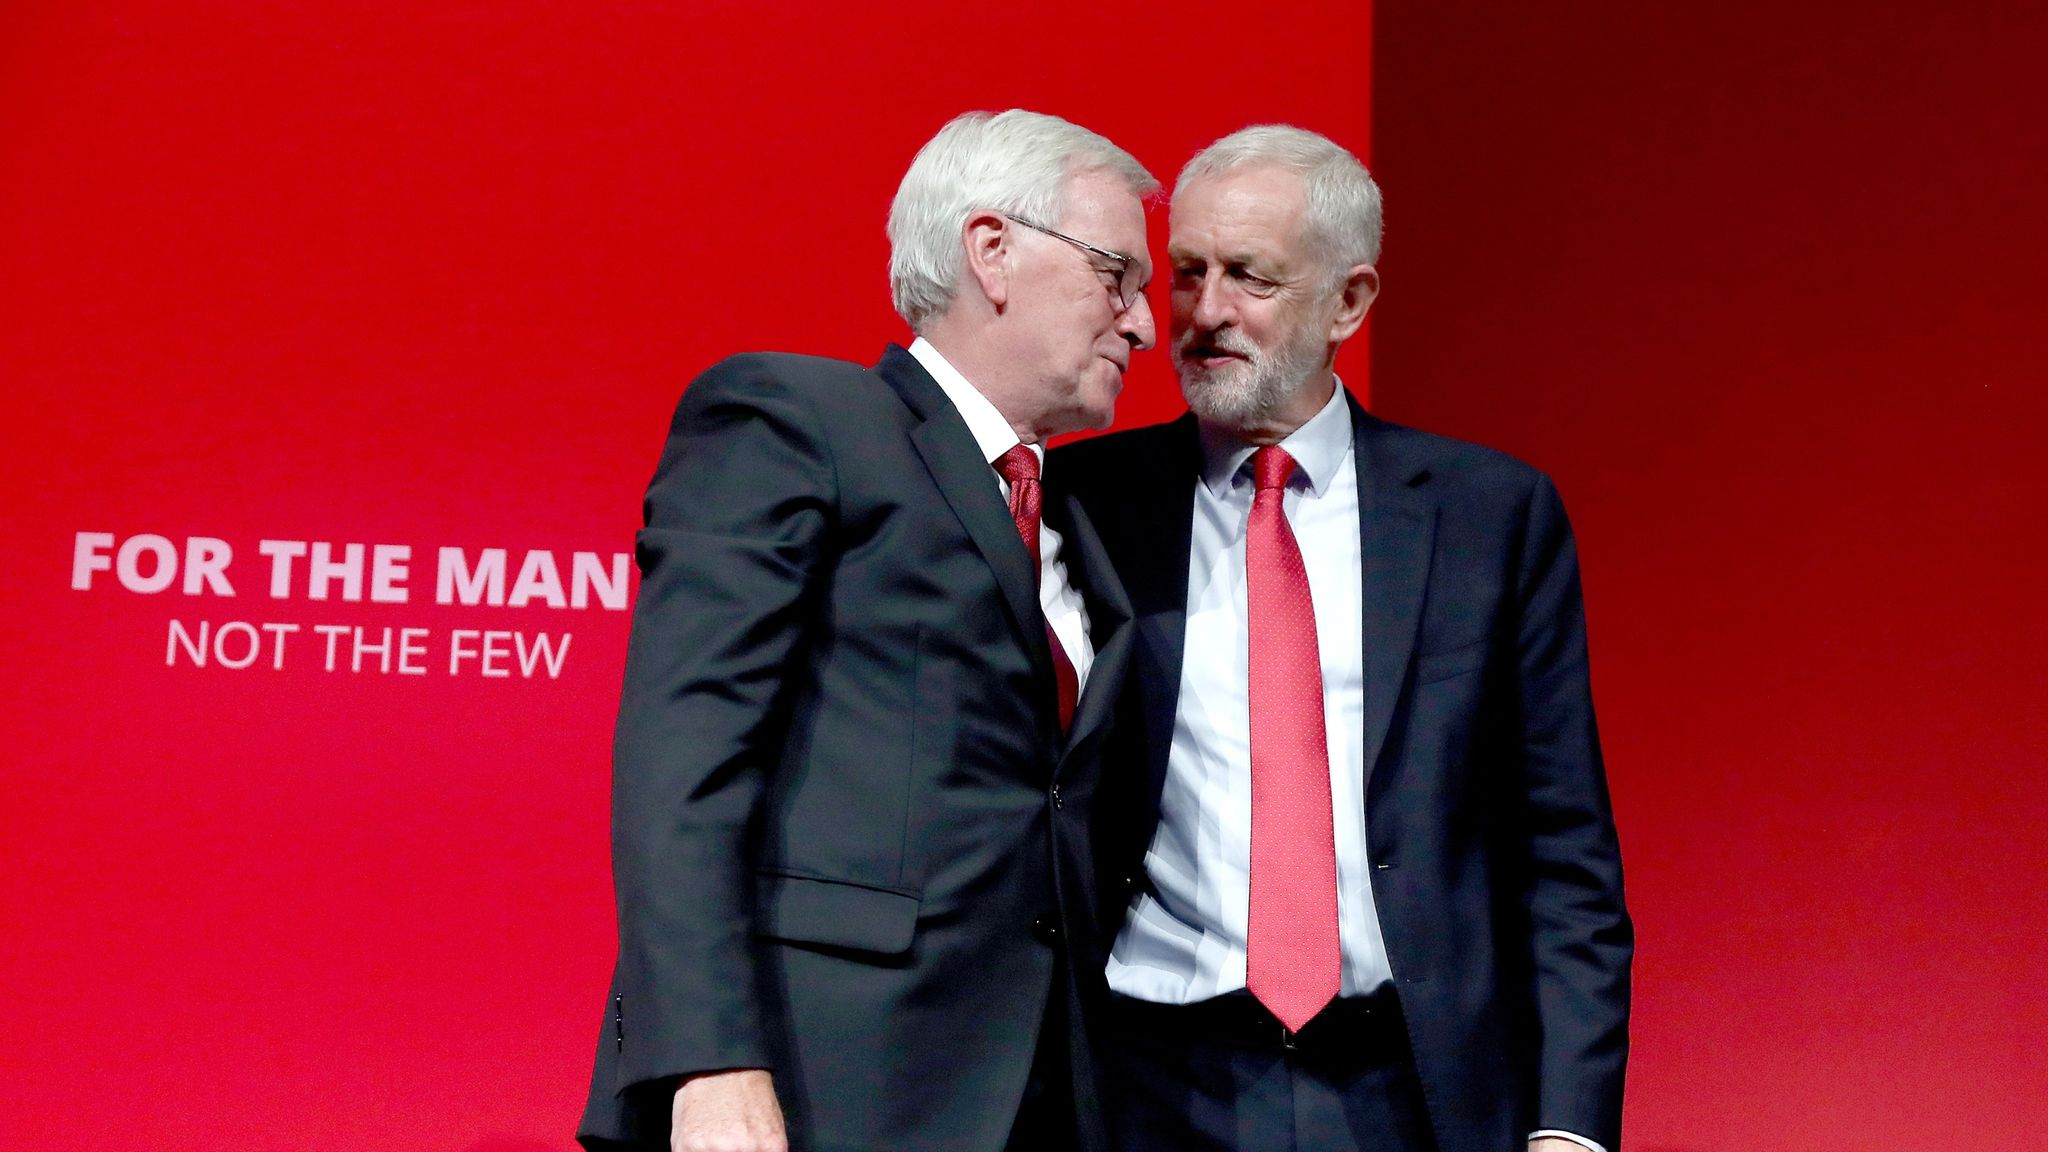 Corbyn allies fear 'under the radar power grab' as Labour leader's office undergoes major shake-up